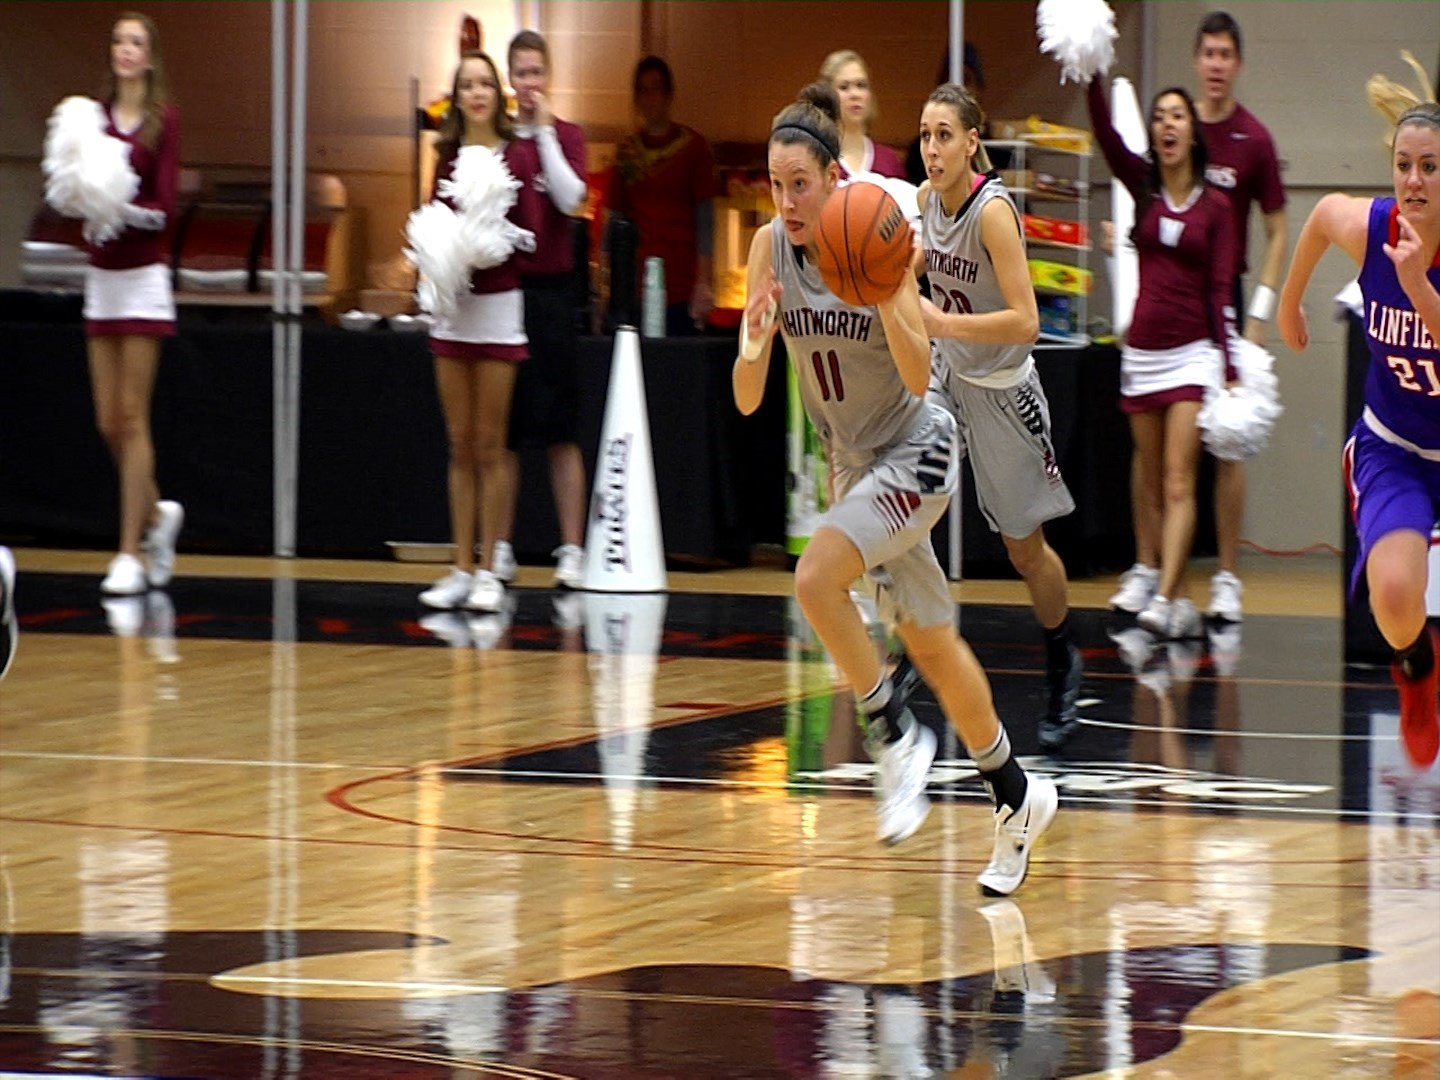 KC McConnell posted her second consecutive 30-point game to lead Whitworth to a 66-53 win over Southwestern (Texas).